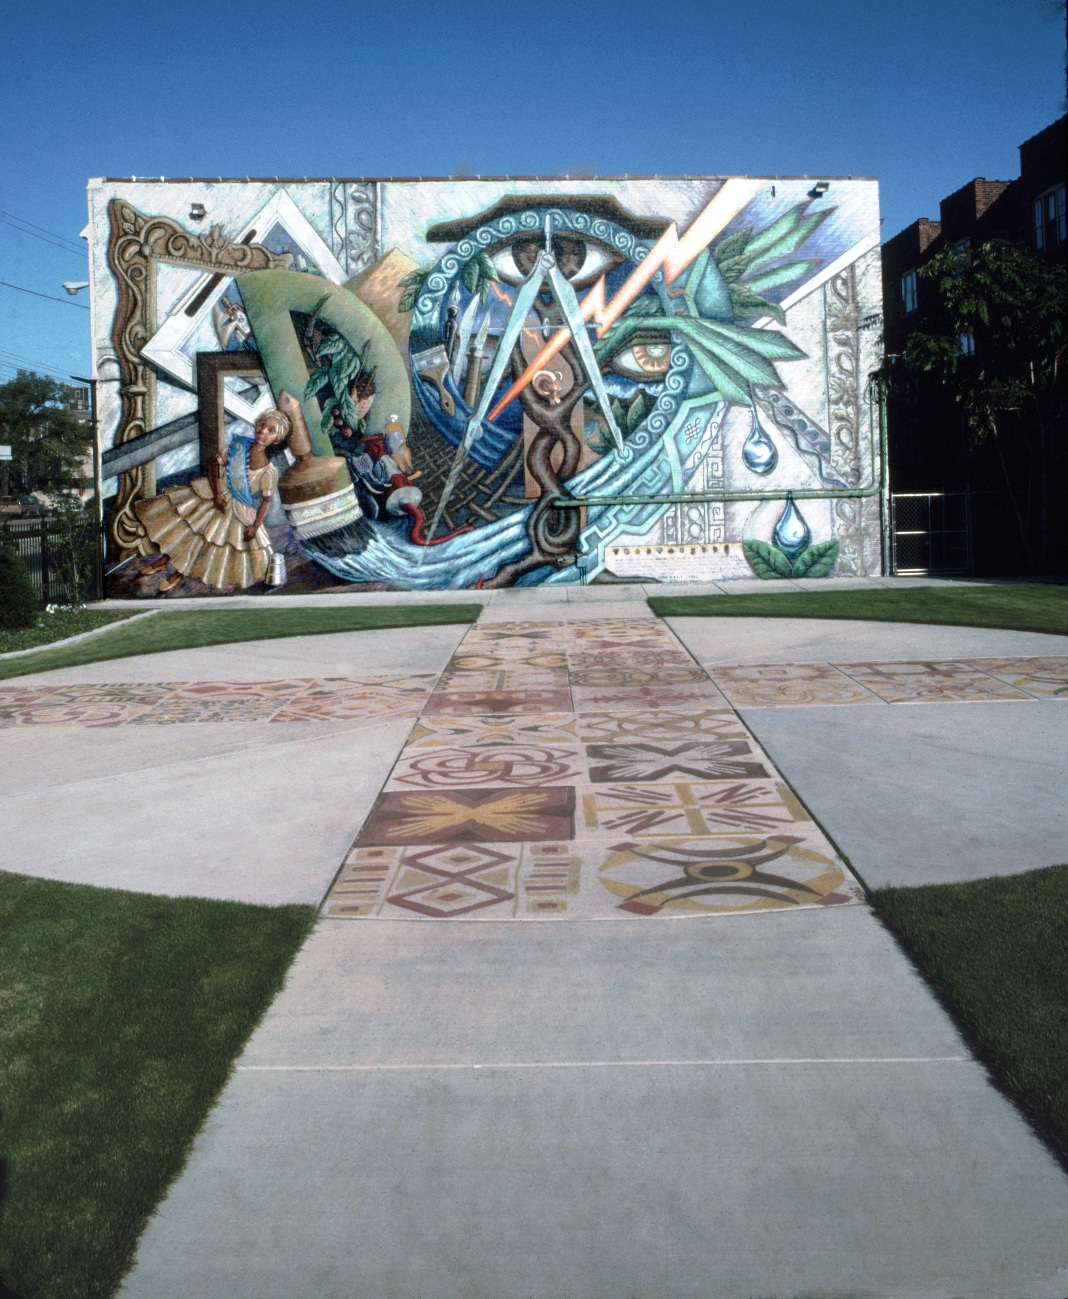 """This 1991 mural at 1801 E. 71st St. by Olivia Gude and Marcus Akinlana, titled """"Where There is Discord, Harmony; The Power of Art,"""" includes multicultural and spiritual symbols."""